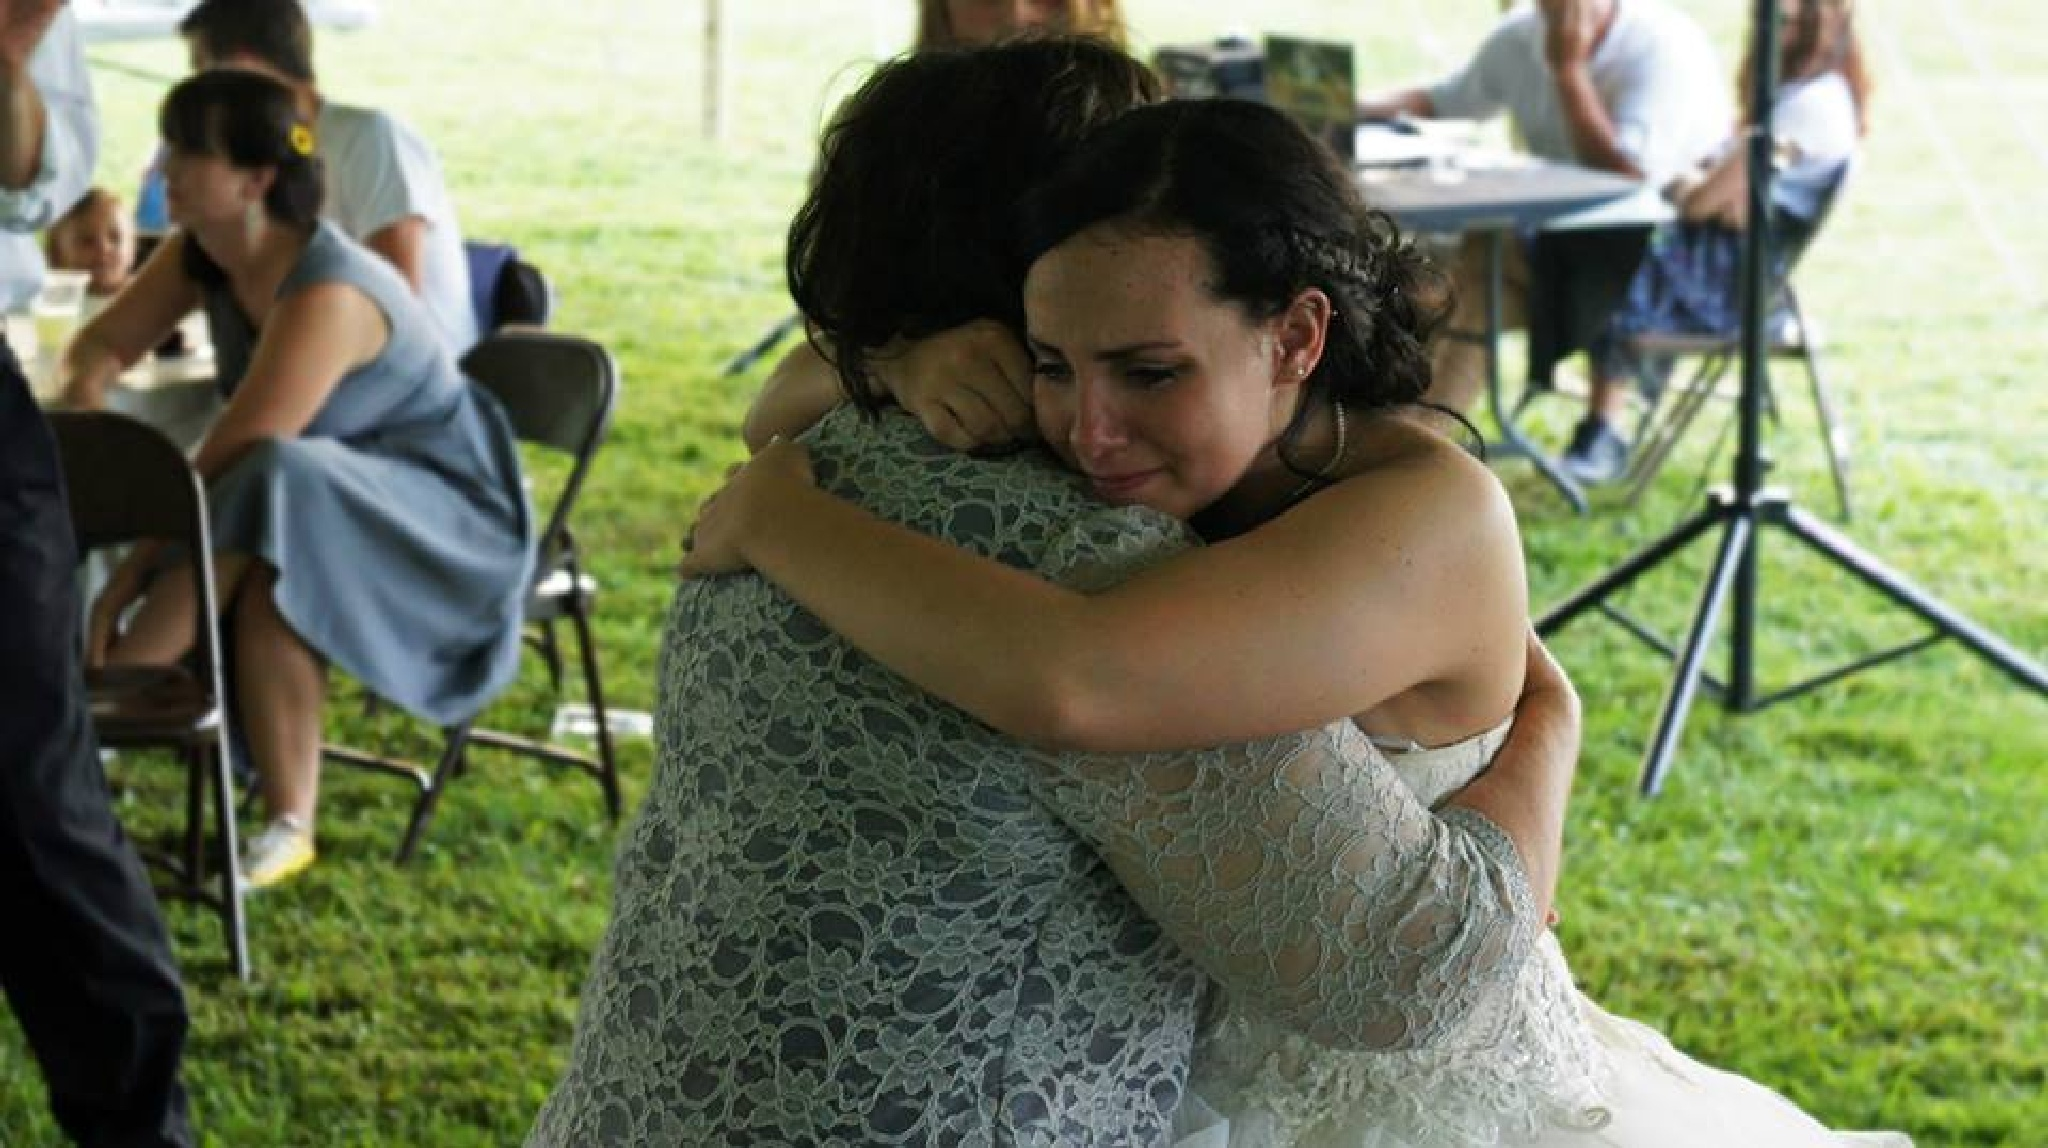 Mother/Daughter Wedding Pic by thomas.holbrook.33